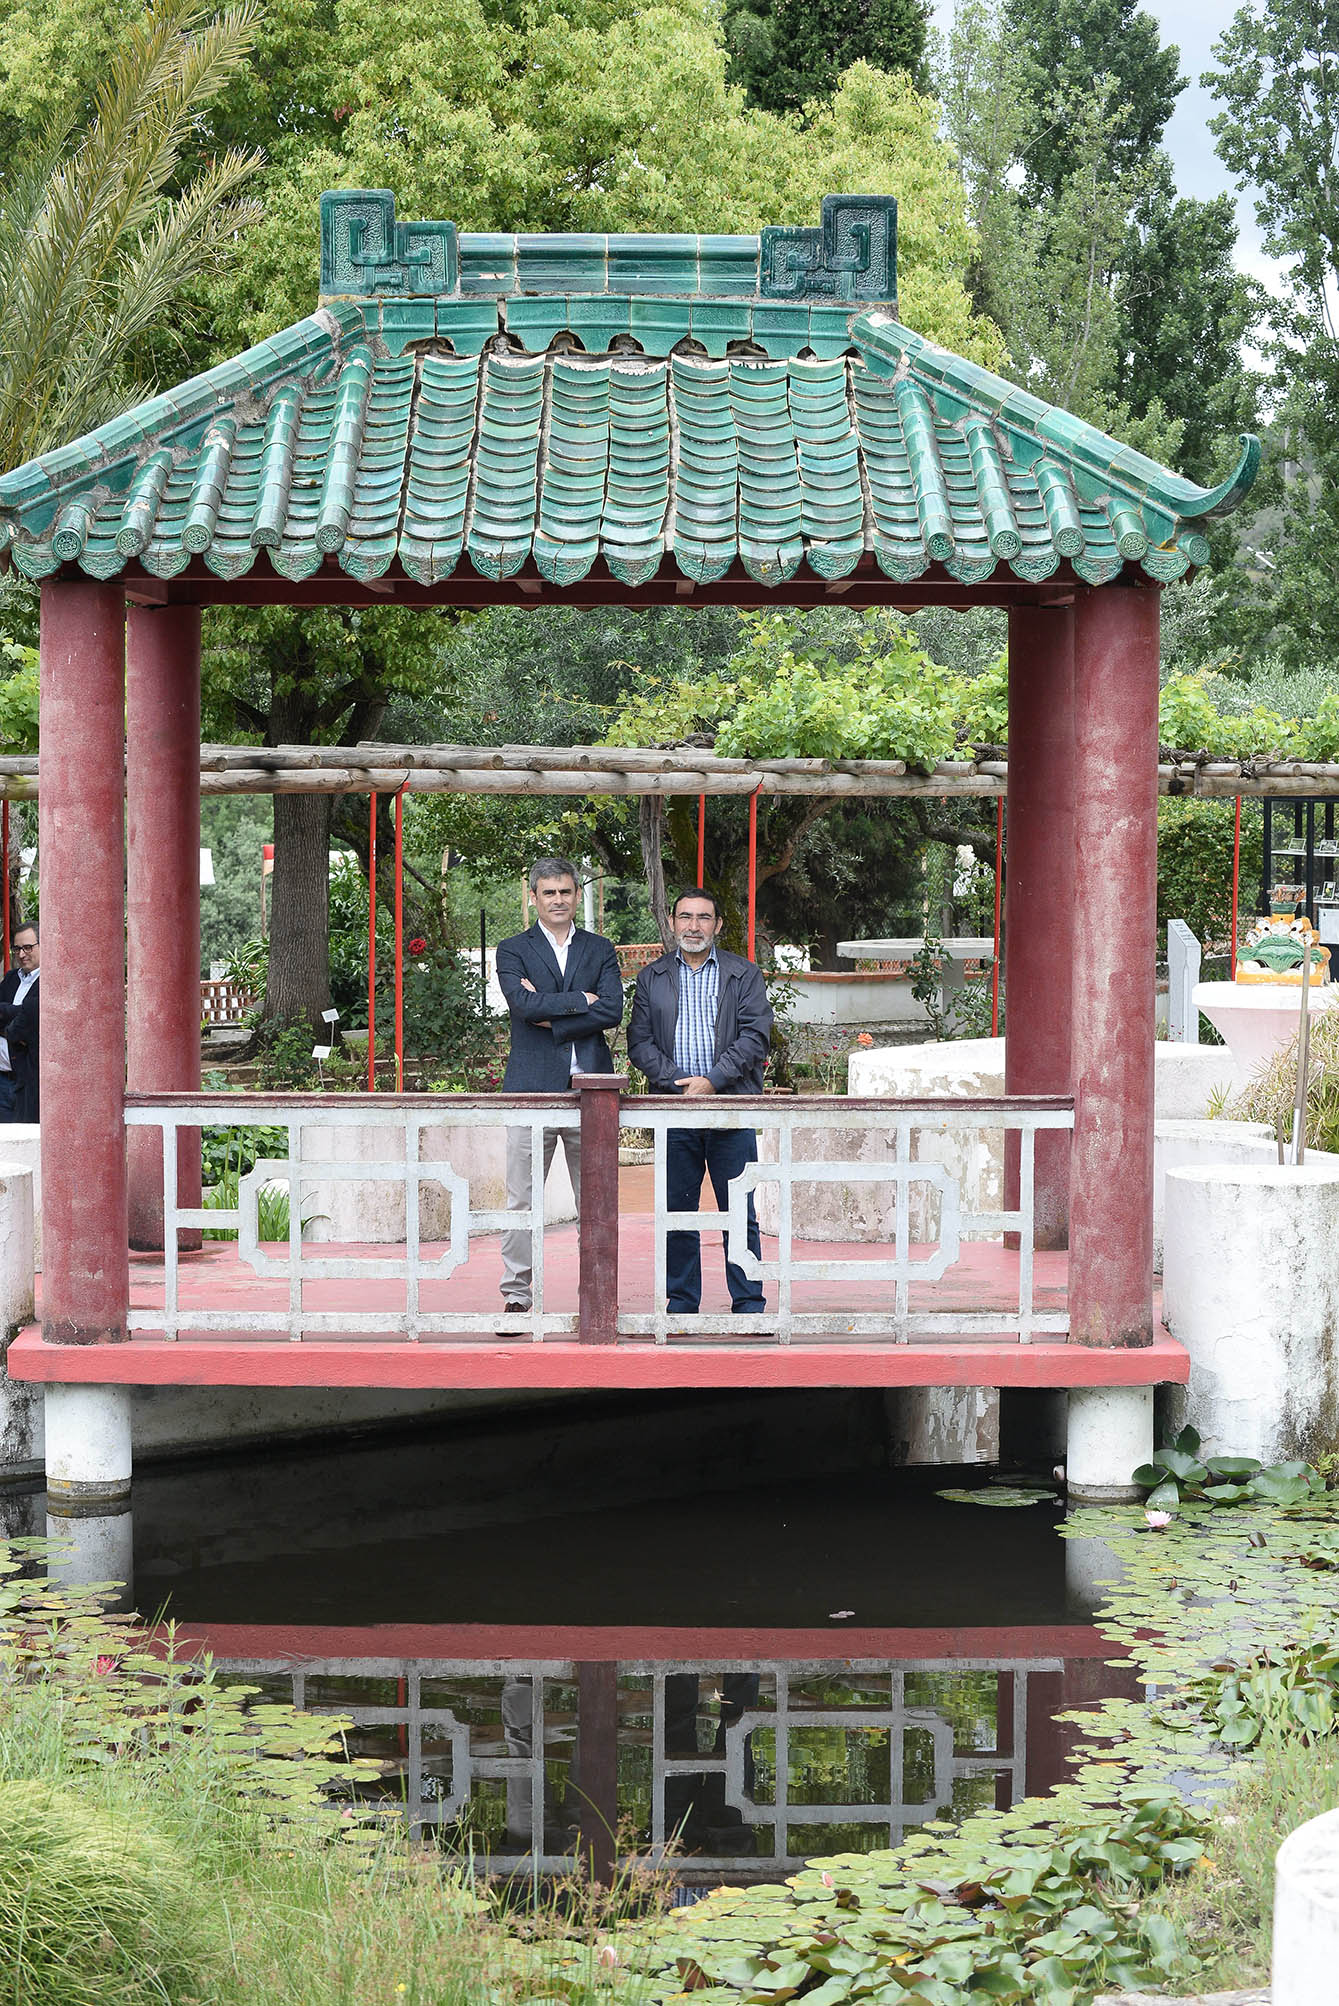 Gualter Vasco, Caima mill manager, with António Matias Coelho, in the Macau pavilion at the Camões garden